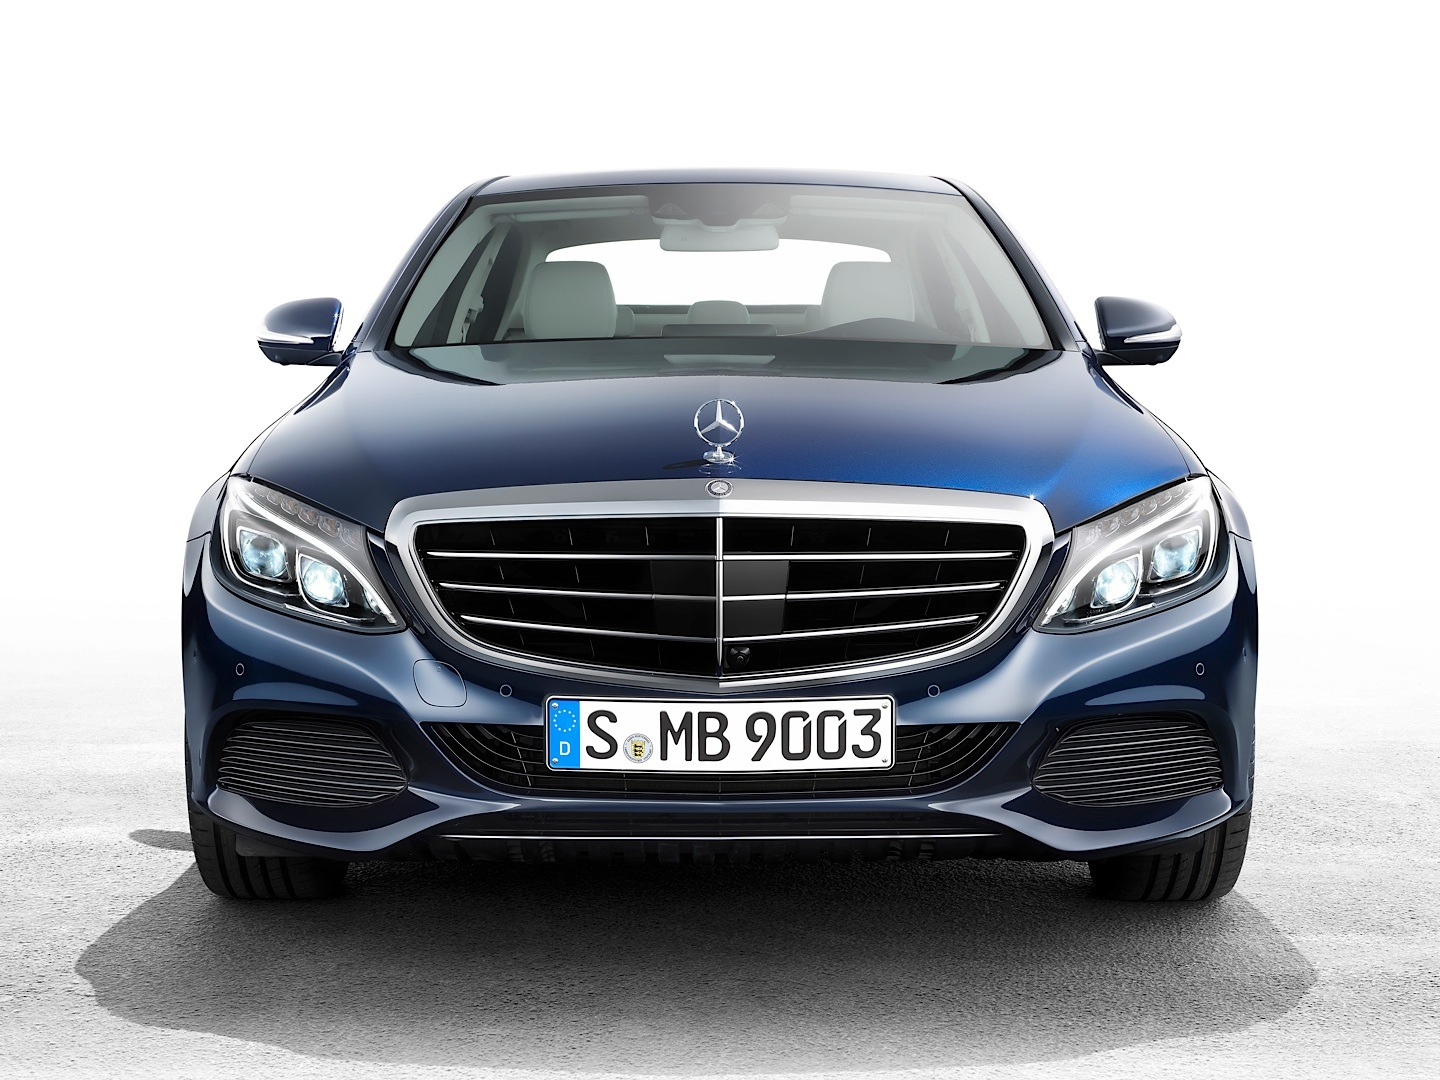 2015 mercedes benz c class sedan review msrp mpg for Mercedes benz new car prices